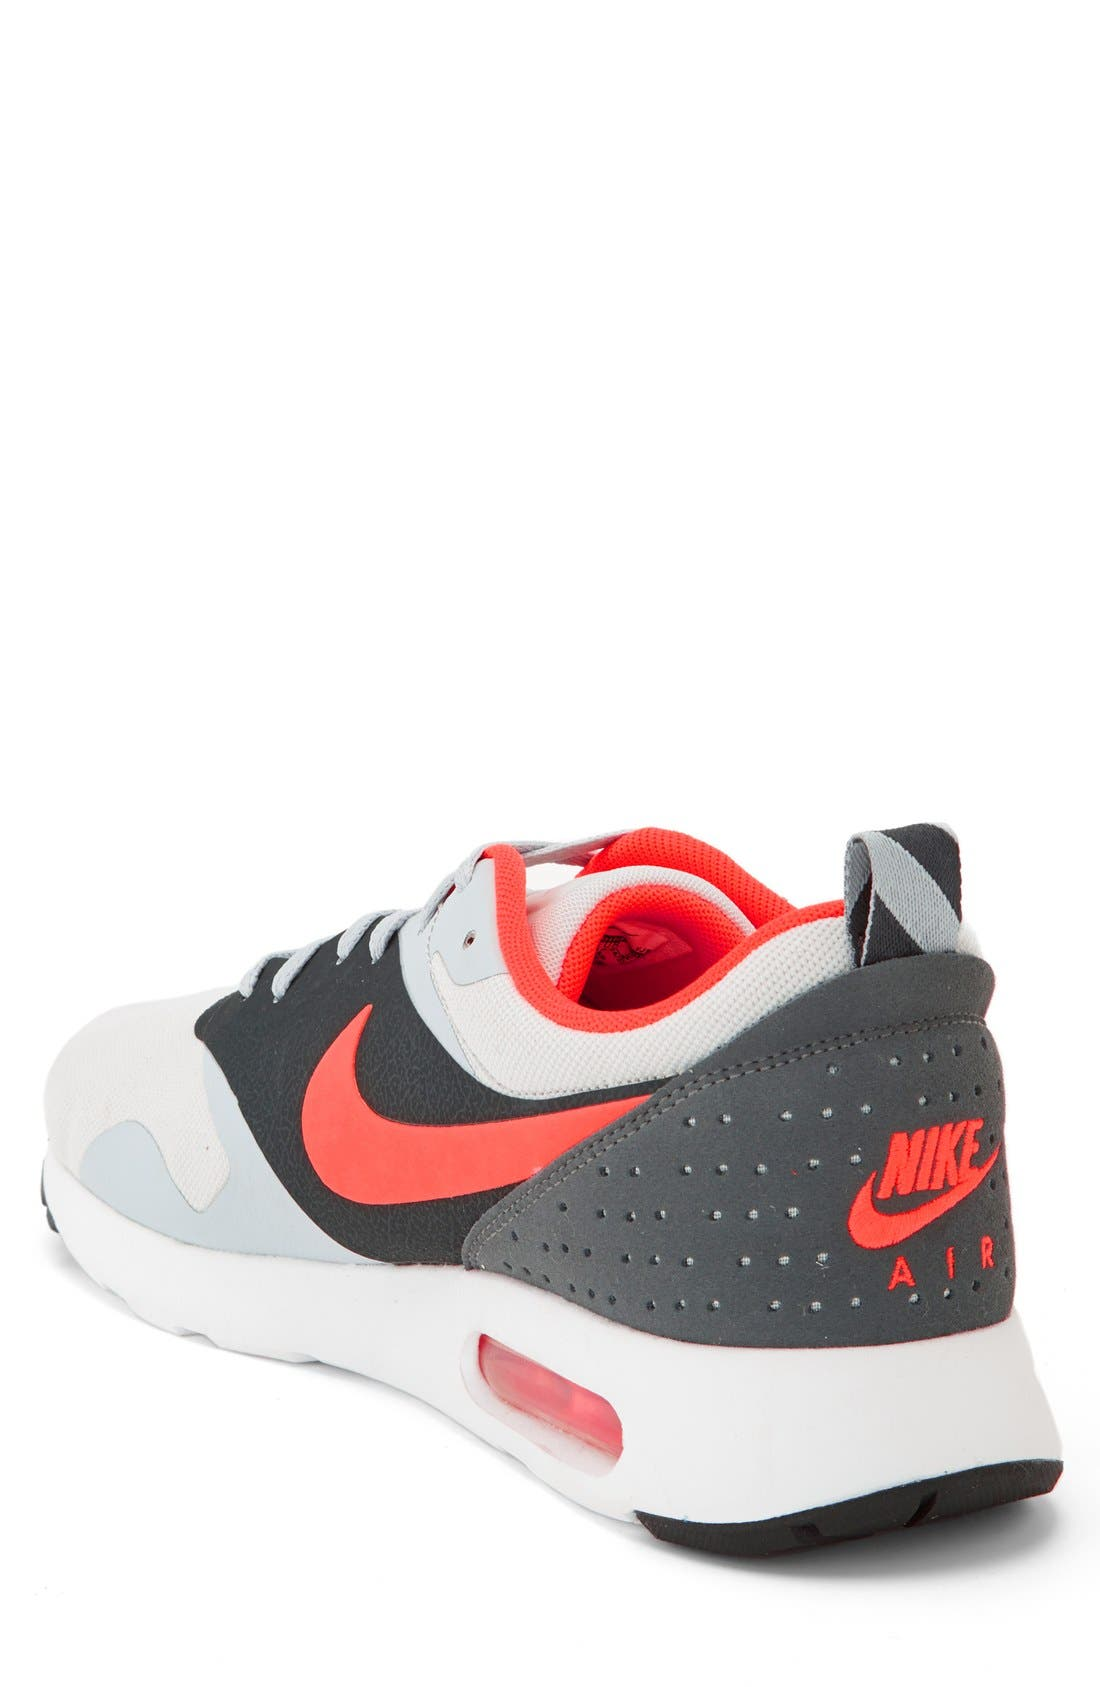 ,                             'Air Max Tavas' Sneaker,                             Alternate thumbnail 94, color,                             062